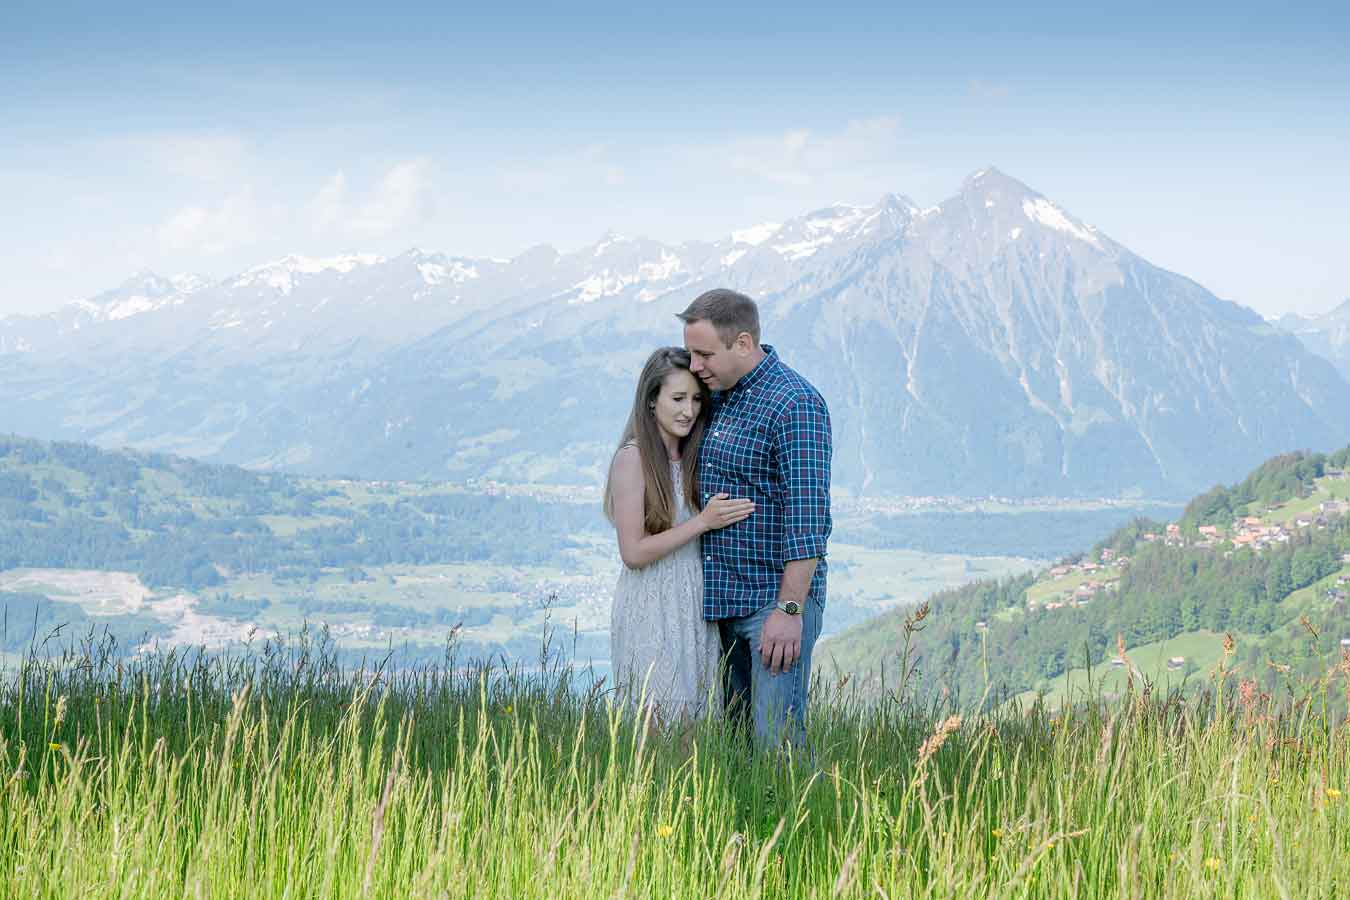 Engagement photo shoot Interlaken